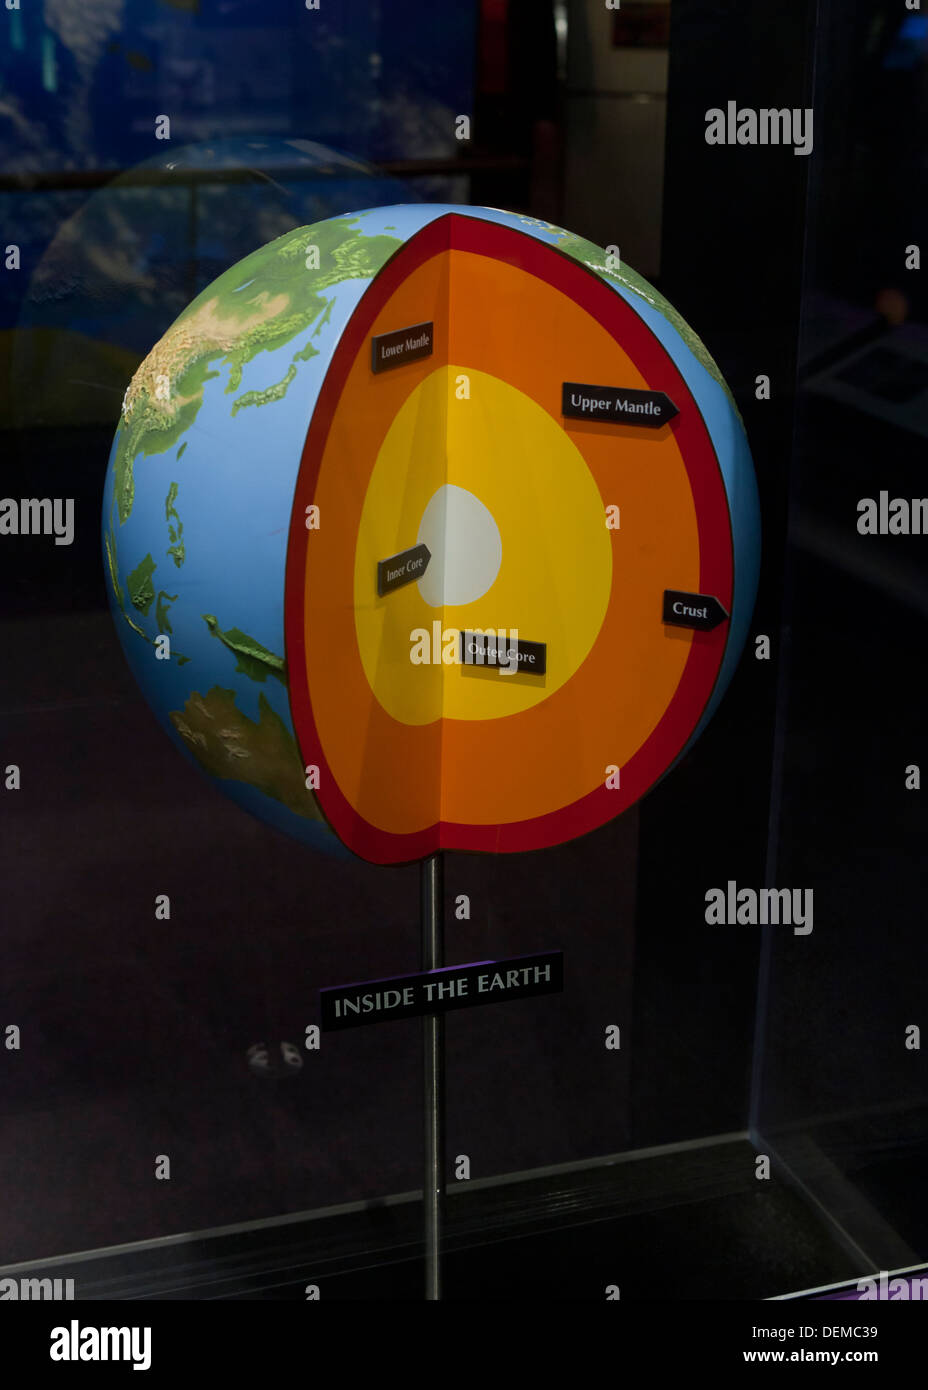 Layers of the earth cutaway display at science museum - Stock Image